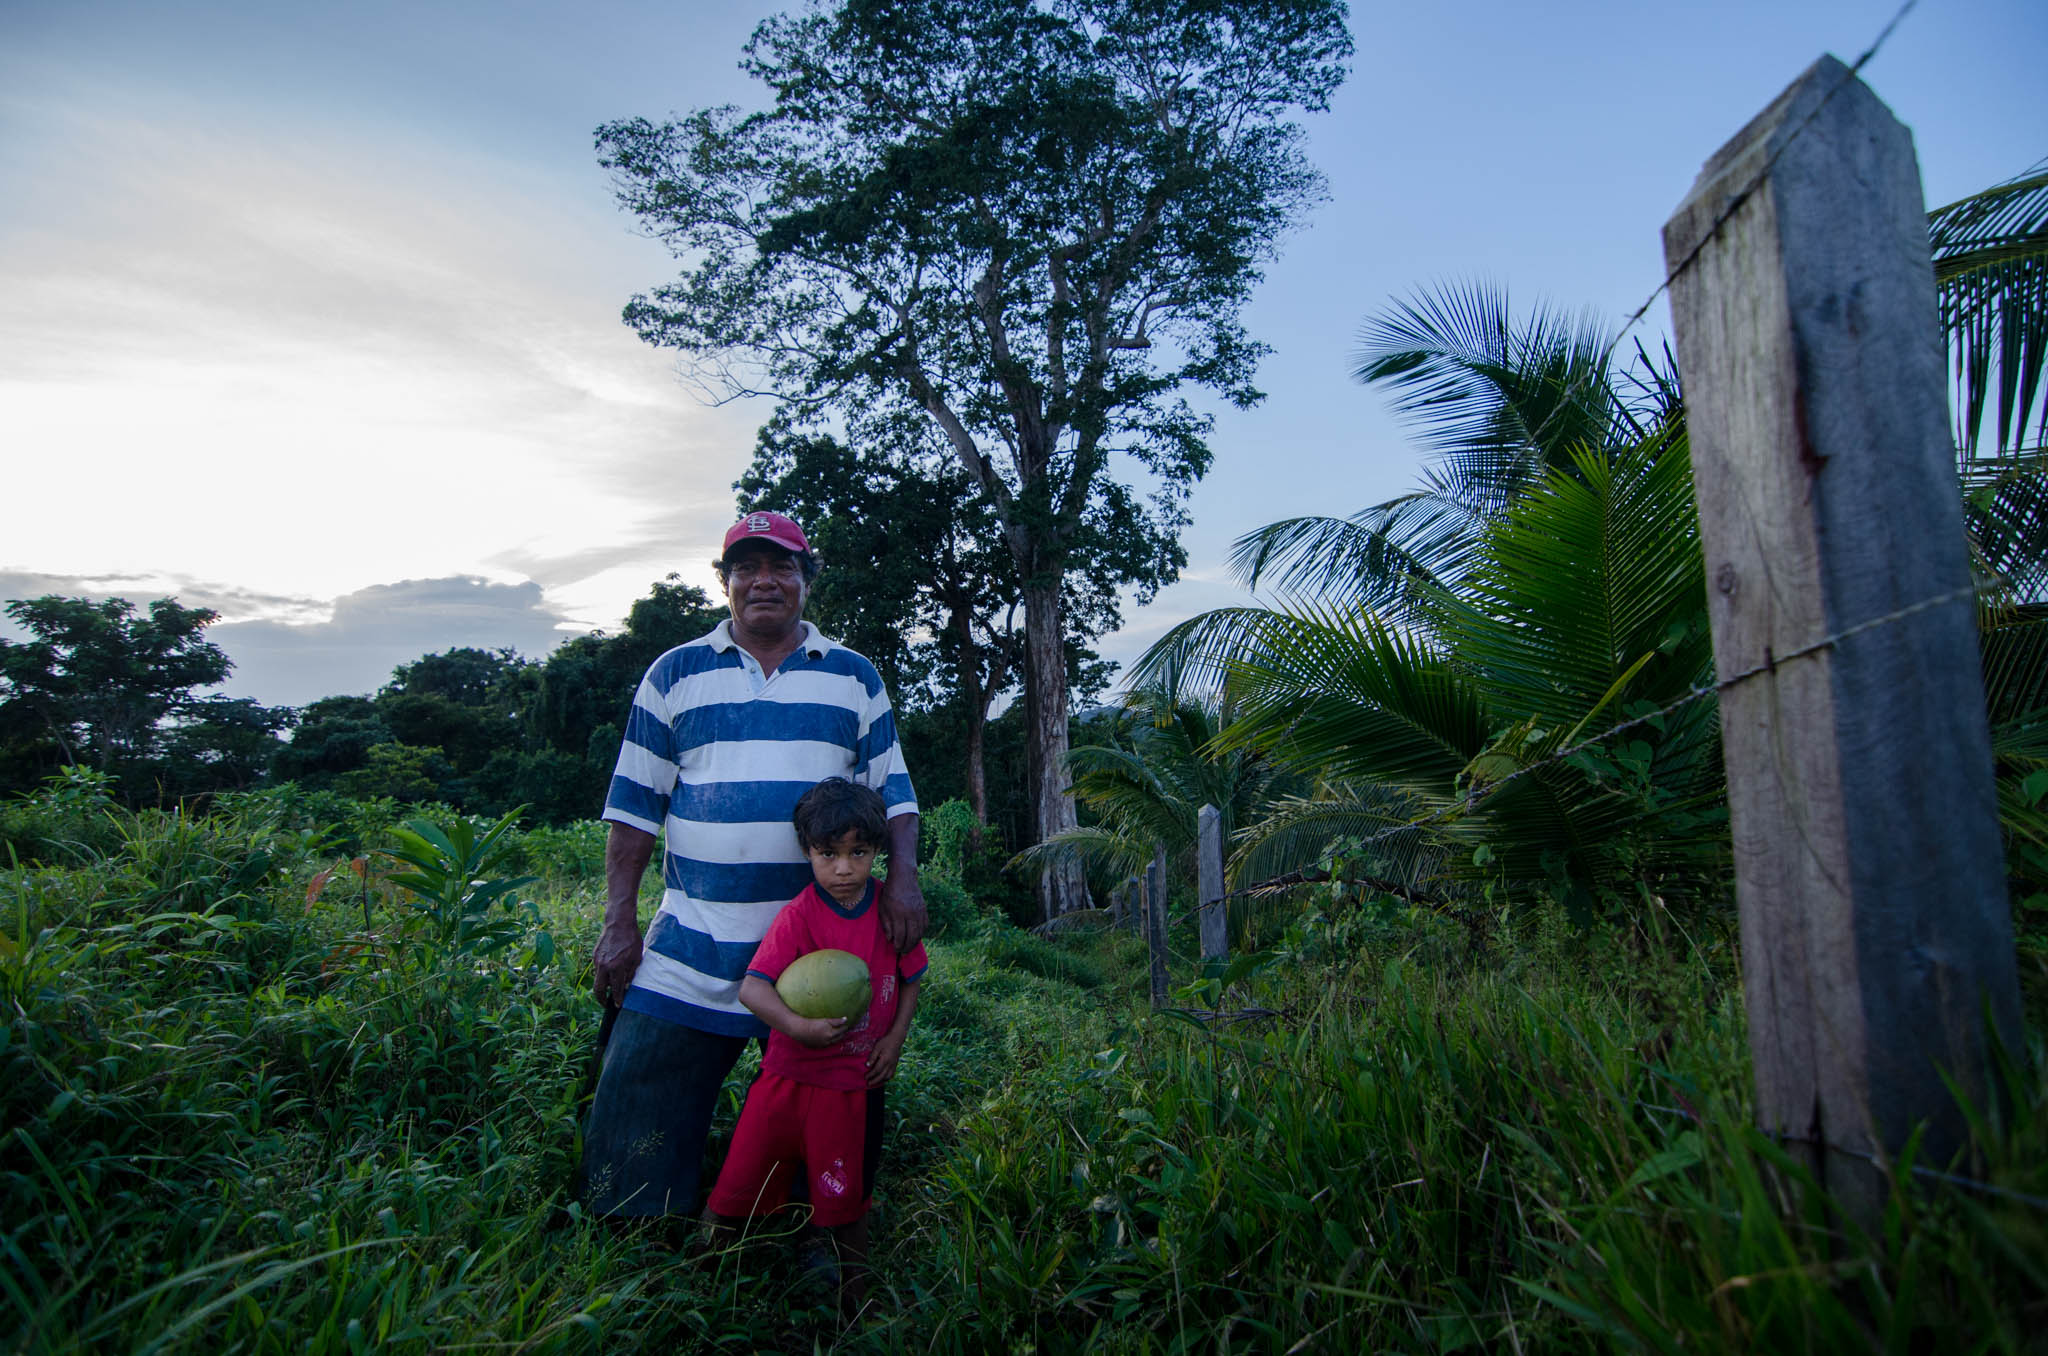 Jimmy and Grandson near his coconut farm, Ebo tree behind them - photo, Tom Miller